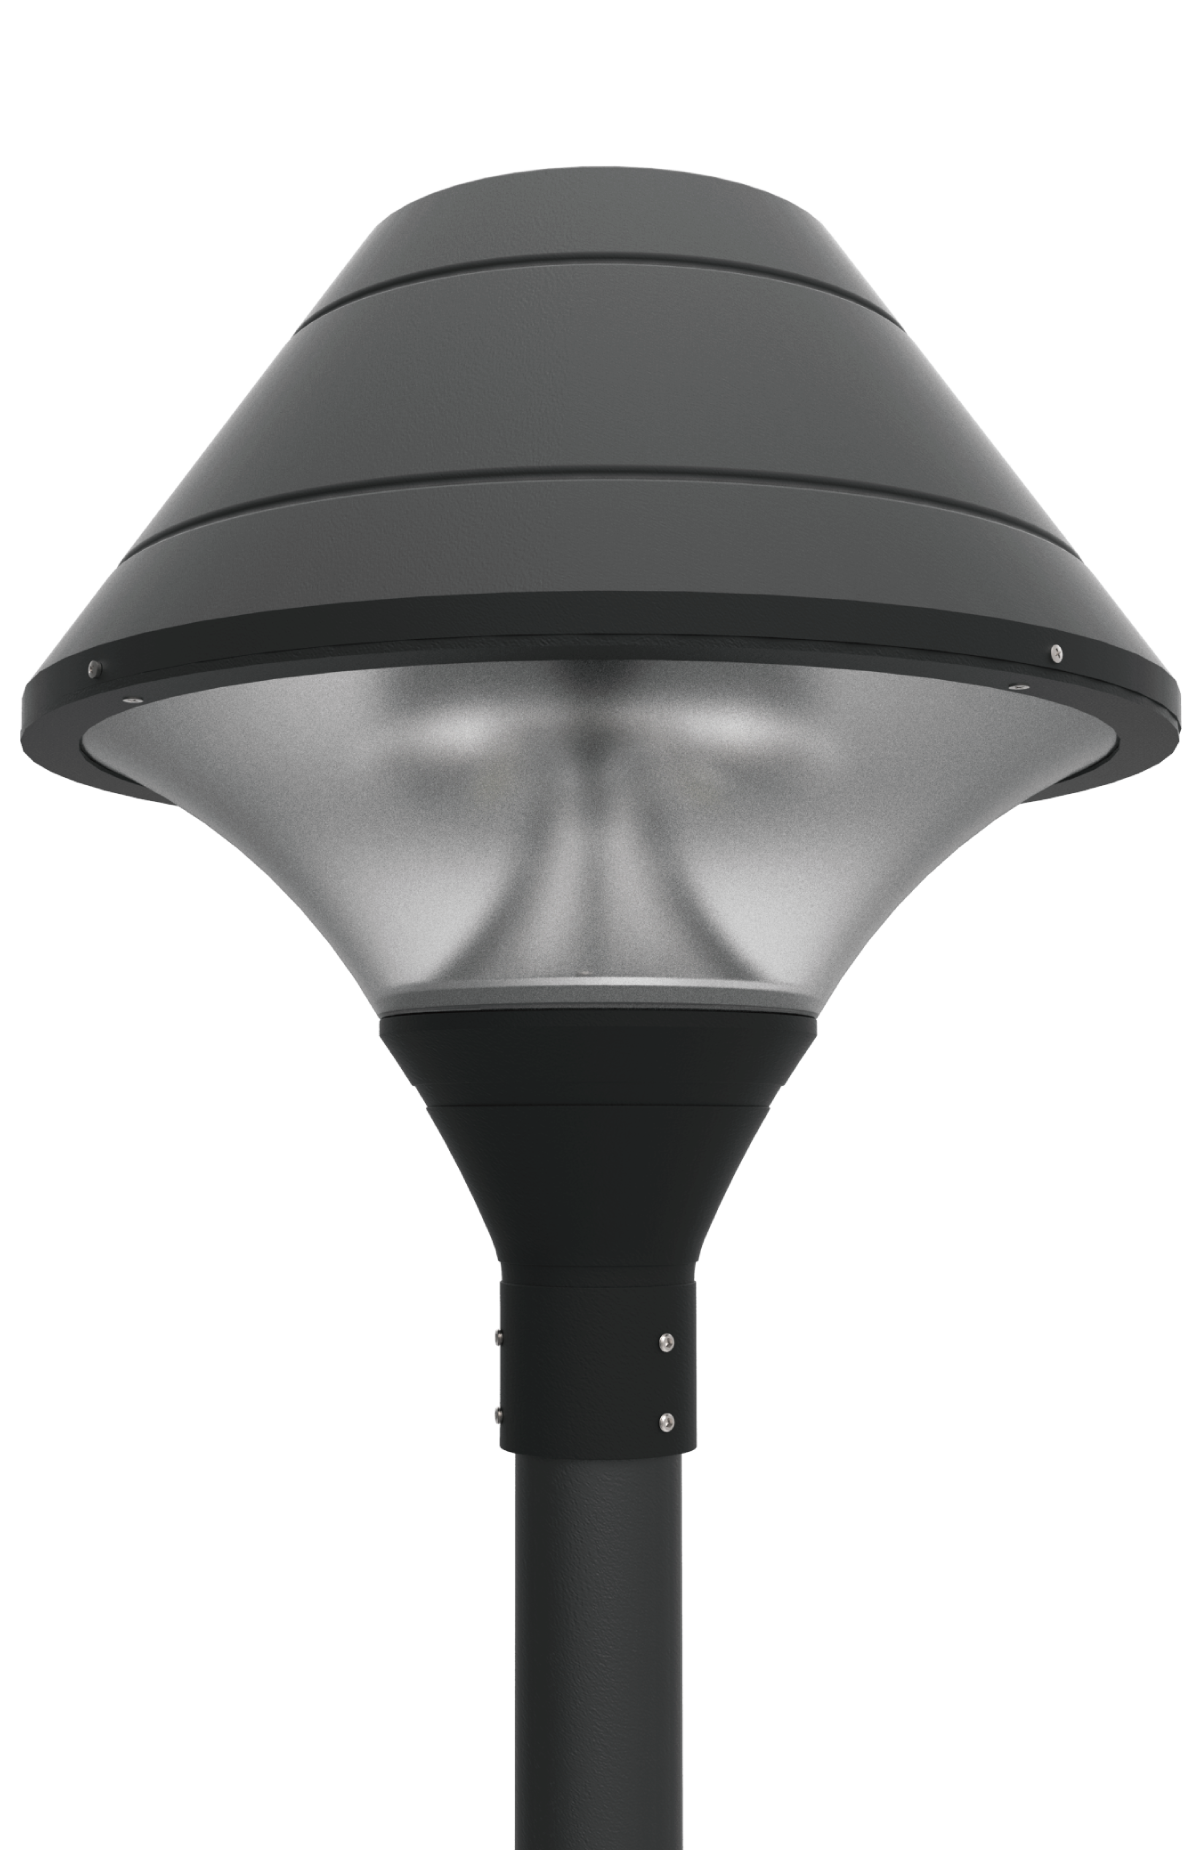 Led pt 640 series led post top light fixtures americana post top send us an email aloadofball Image collections